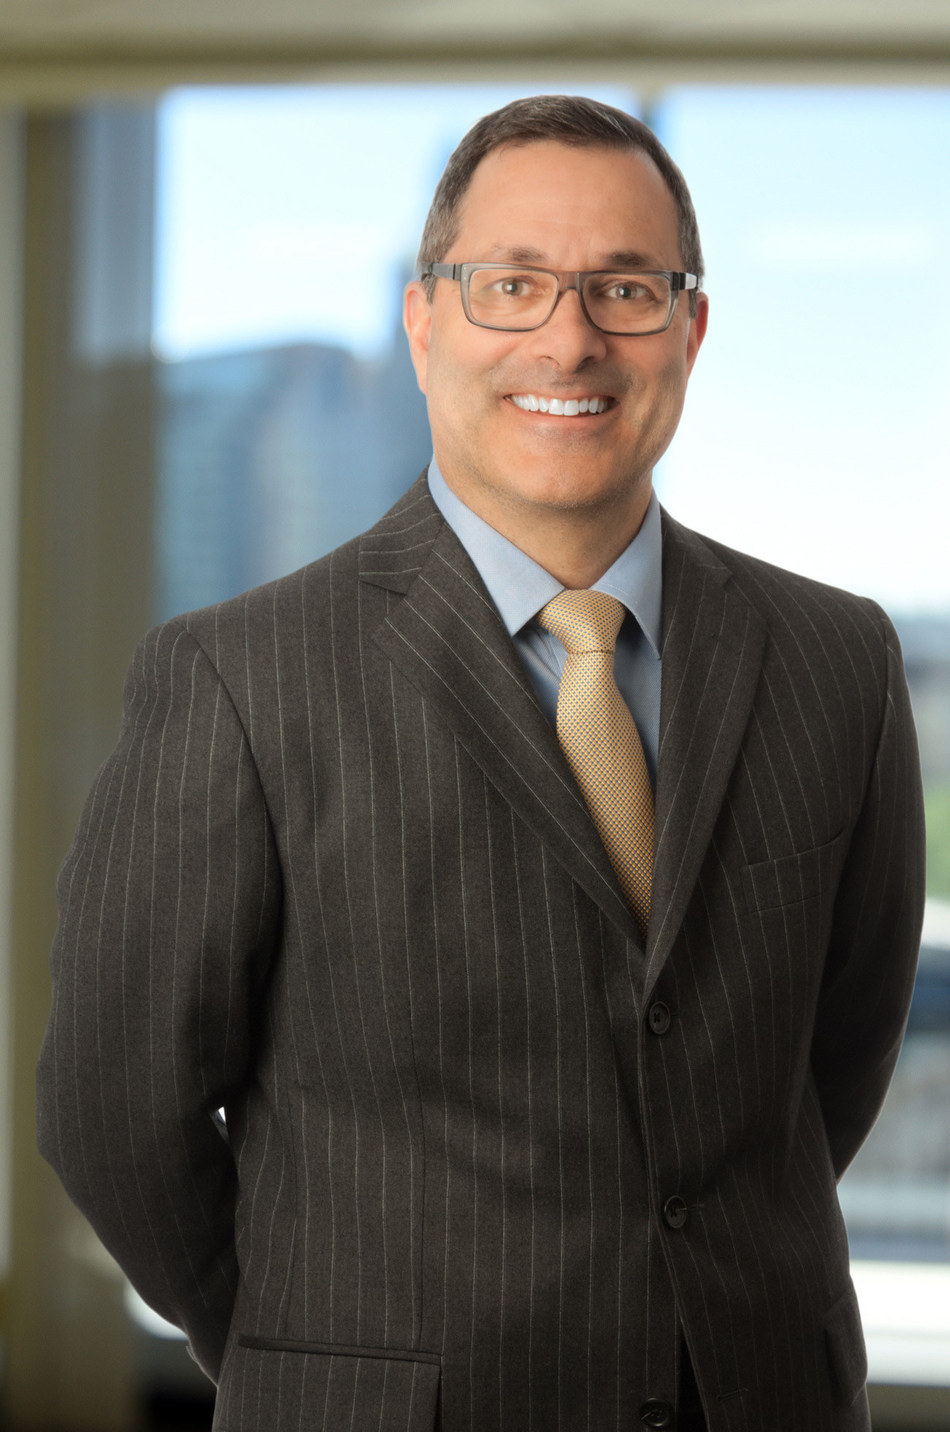 George Chaclas has joined Burns & Levinson as a partner in its Intellectual Property (IP) Group. Chaclas, who has over 19 years of experience, was previously with Adler Pollock & Sheehan in Providence, RI. Also joining the firm from Adler Pollock are associate Daniel McGrath and patent agent Katherine Larson. These three new hires are part of Burns & Levinson's continued expansion of its IP practice group.